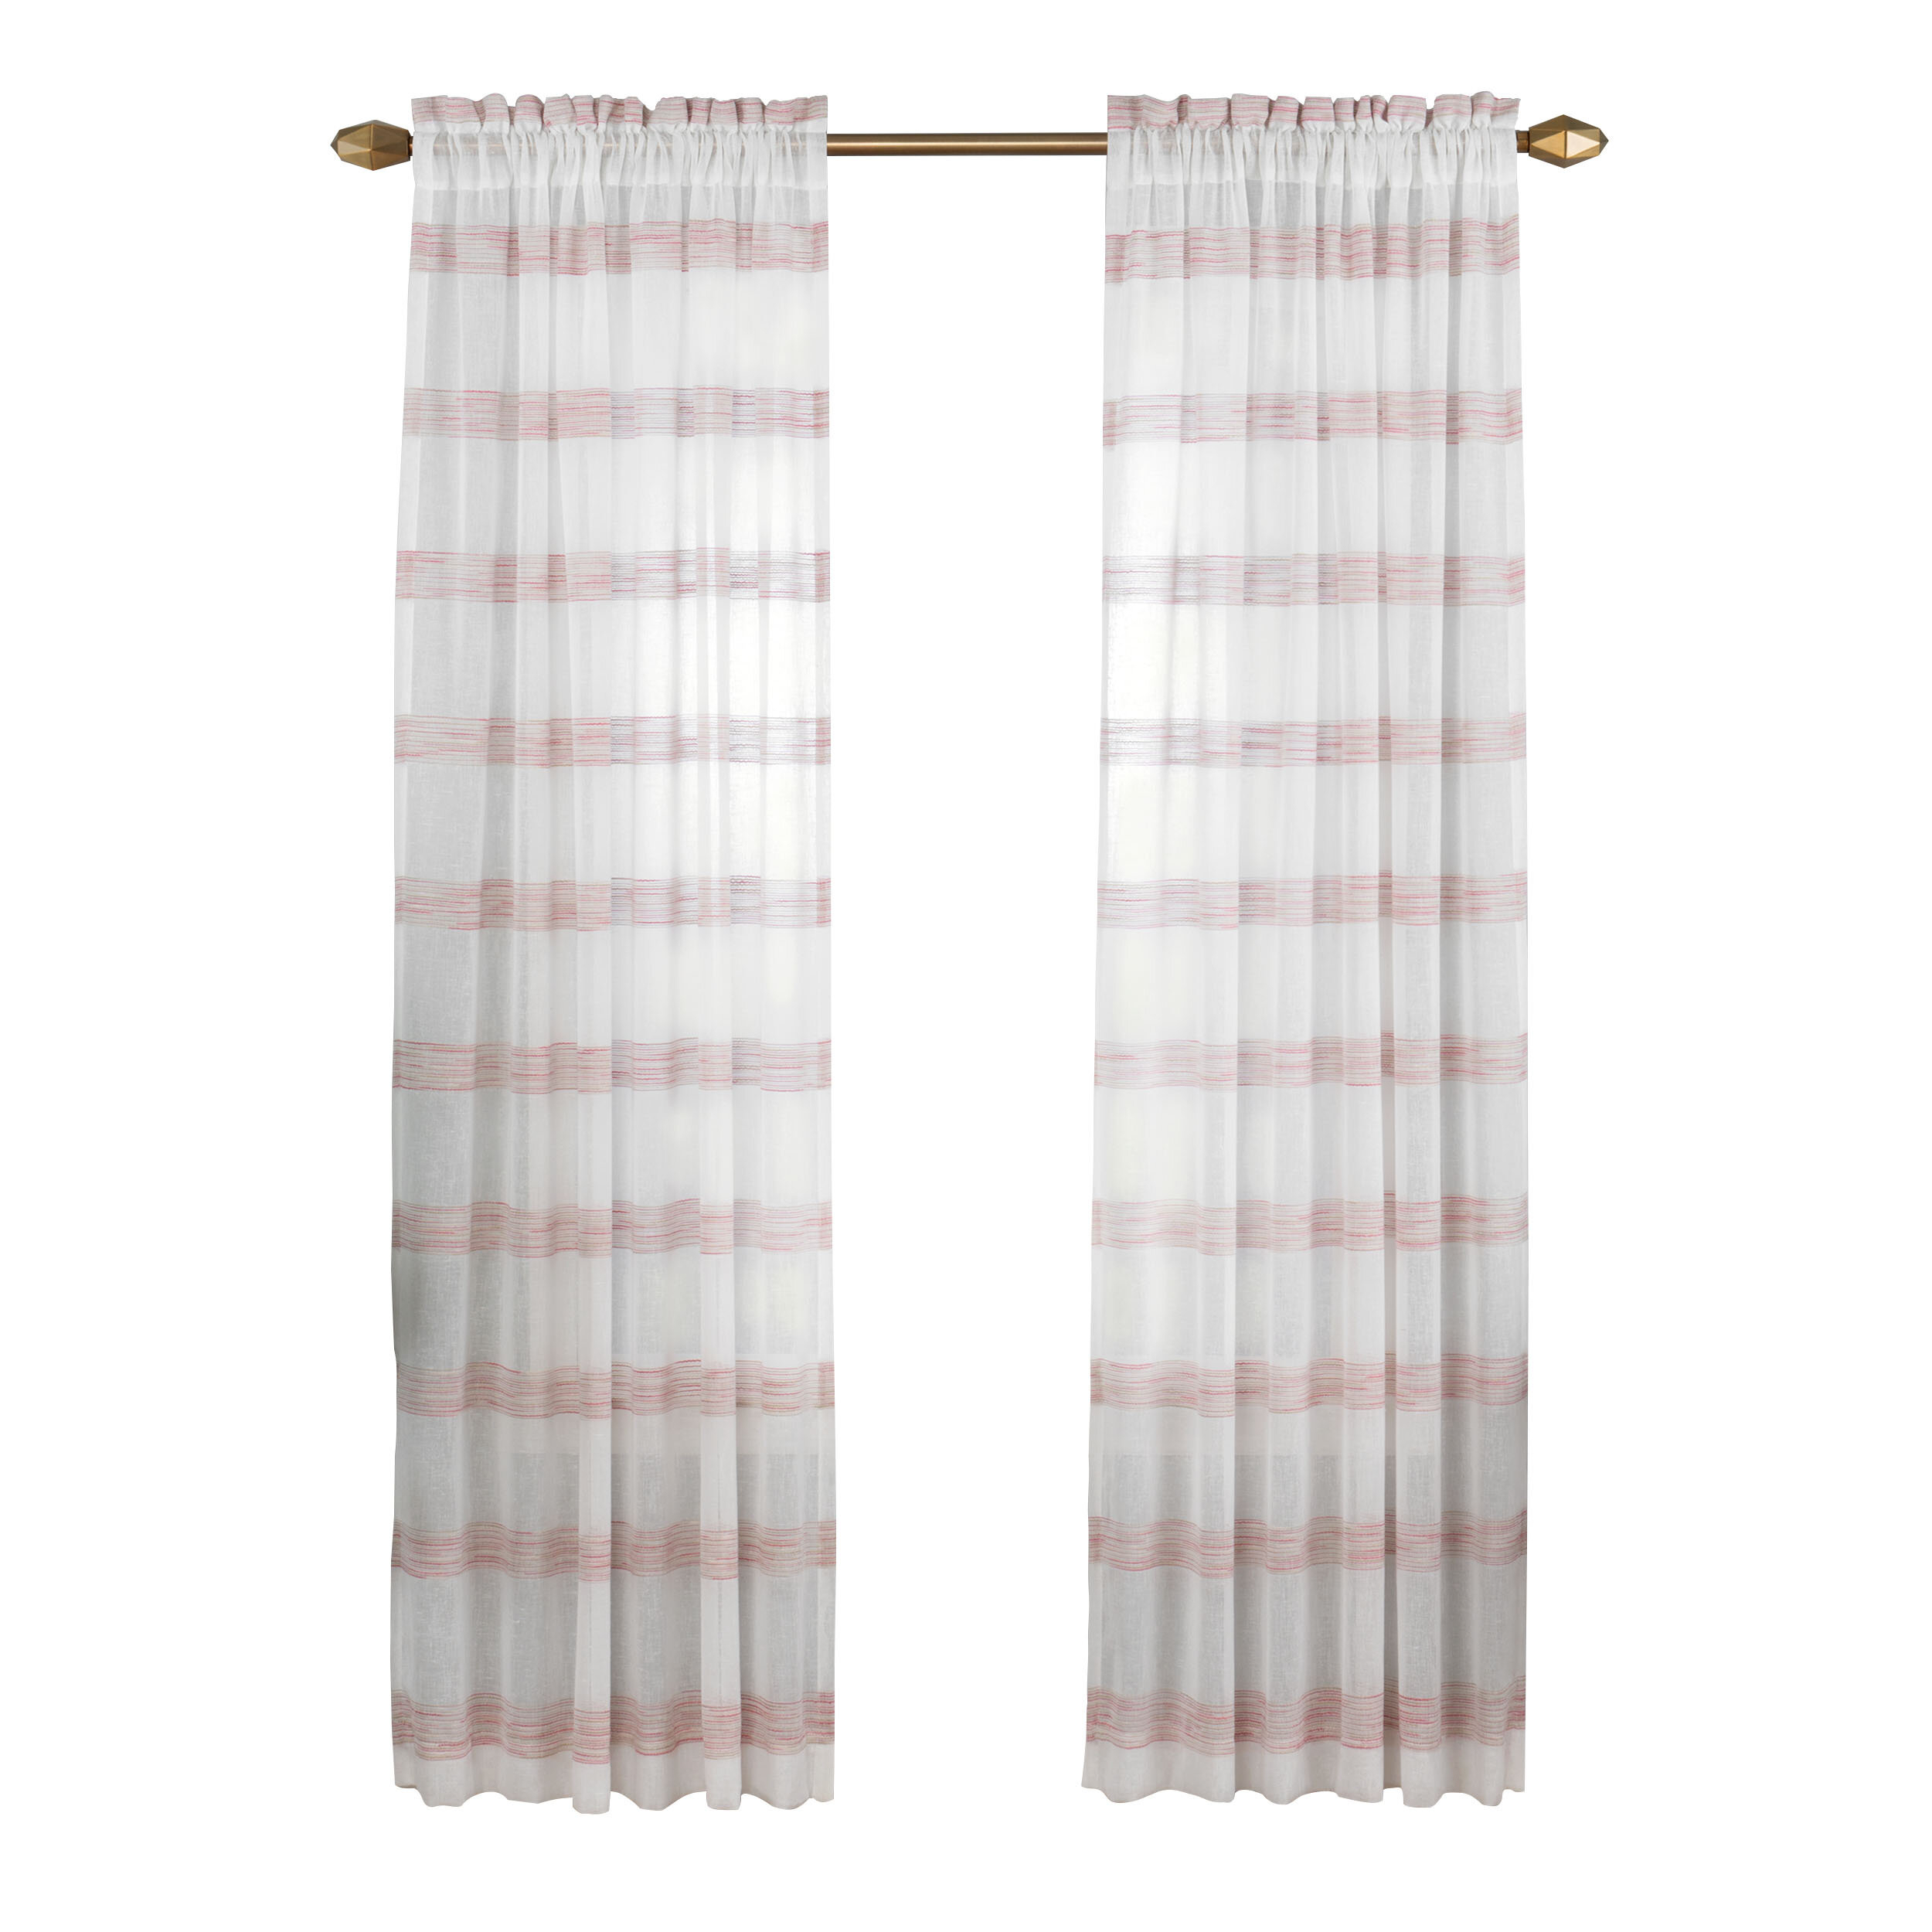 Hawkinsville Window Striped Semi Sheer Single Curtain Panel With Regard To Emily Sheer Voile Grommet Curtain Panels (View 19 of 20)